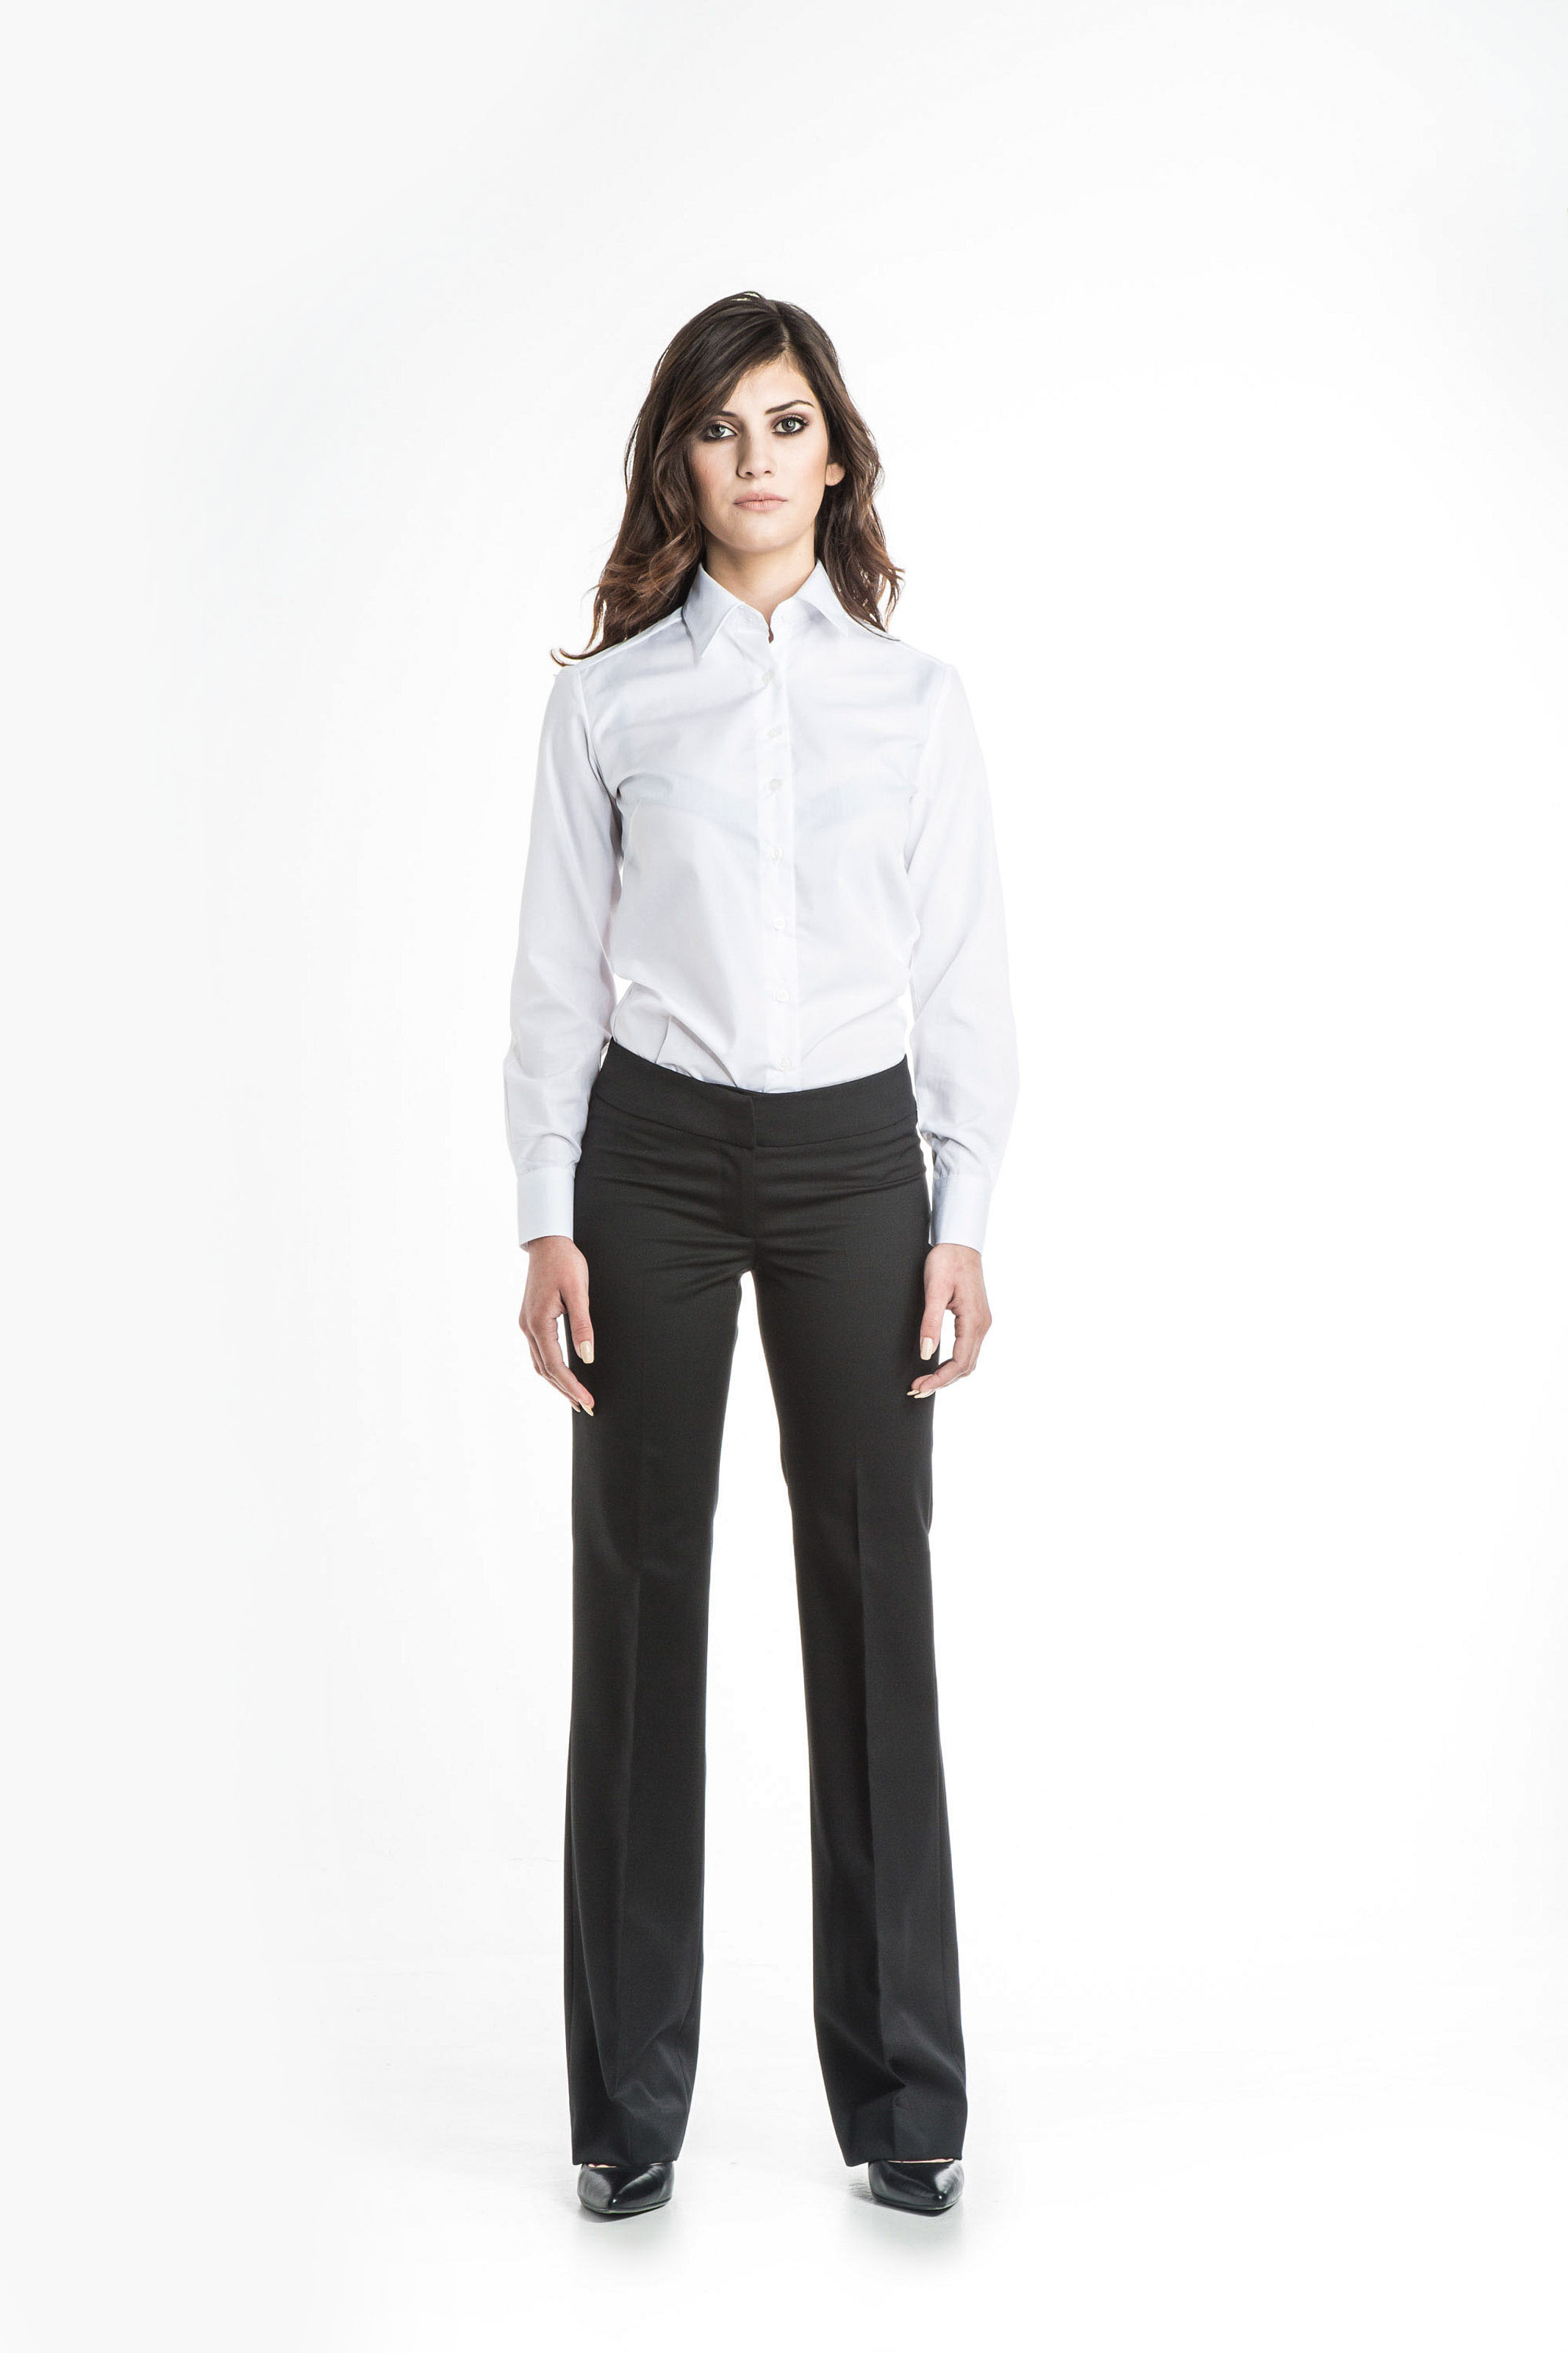 Aris Uniforms-FT01-Jovana Women's Trouser